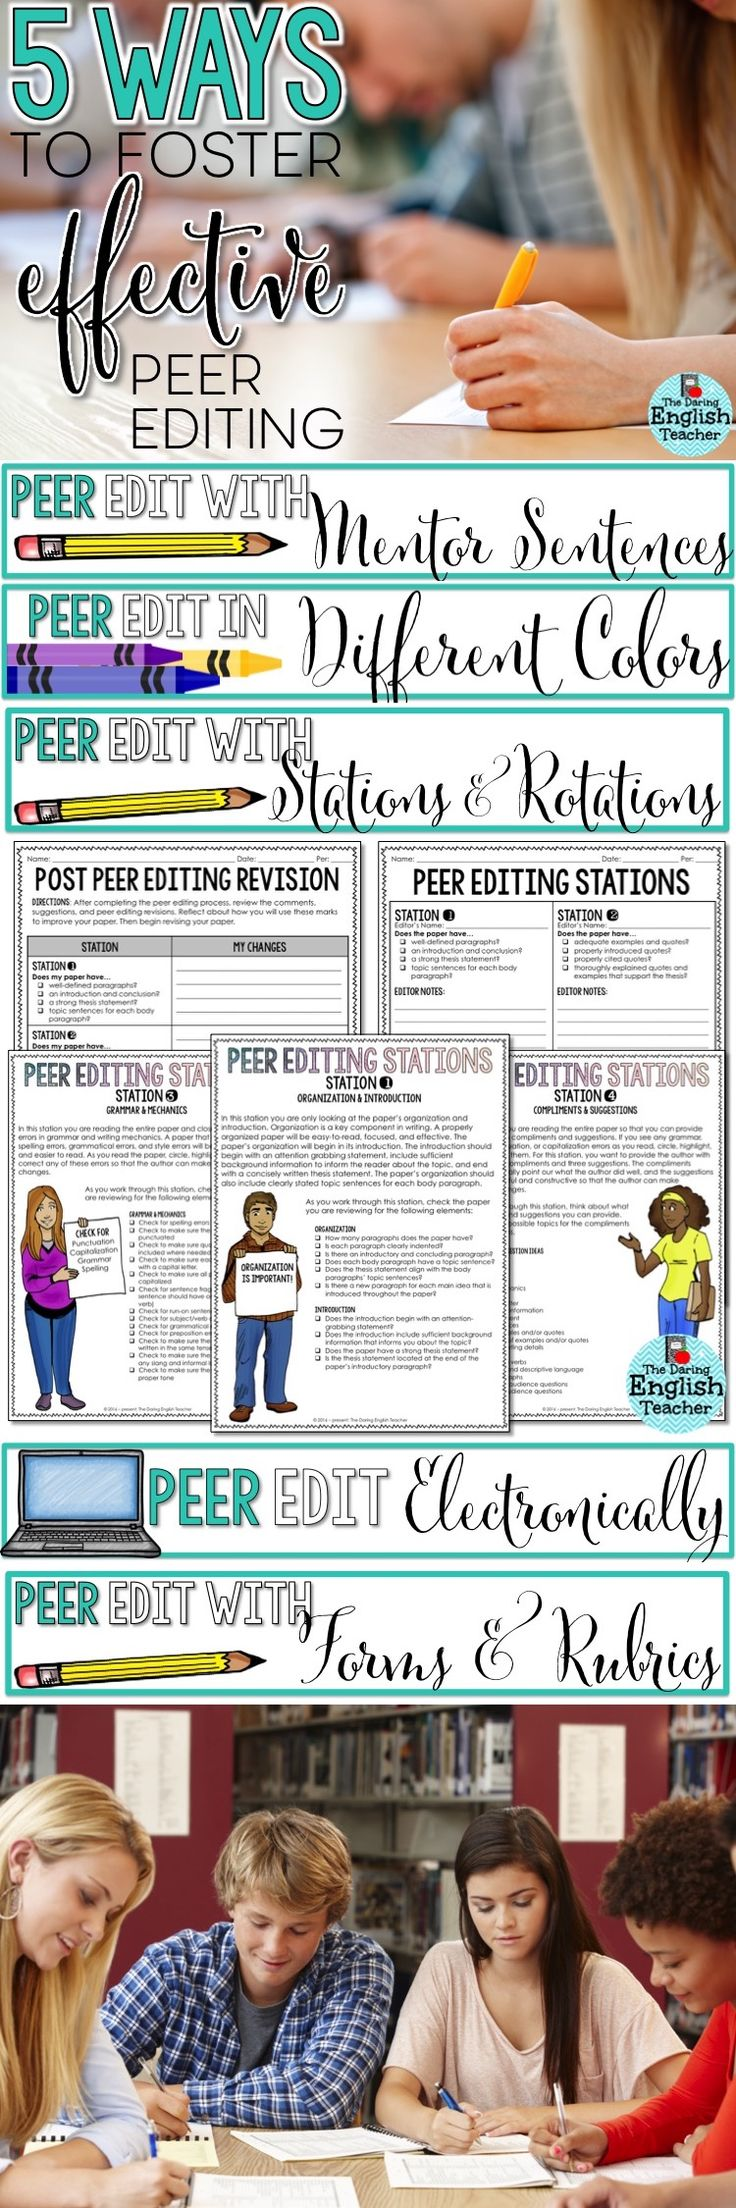 5 Ways to Foster Effective Peer Editing: Strategies and activities for middle school and high school writing and peer editing. English.